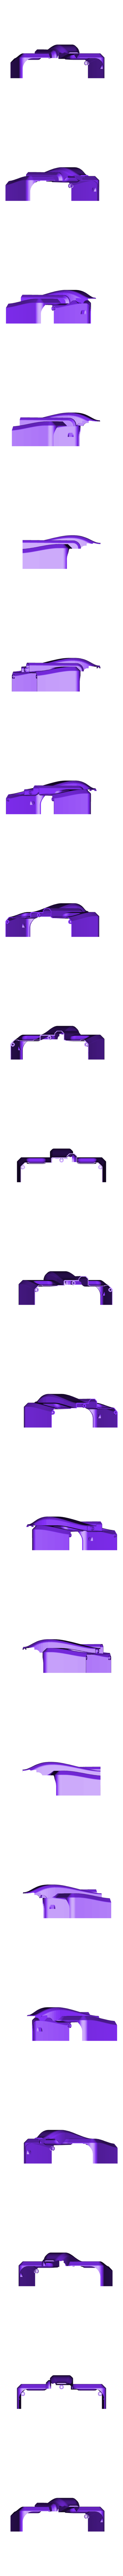 Body06.STL Download free STL file Lynx - Fully 3D-printable 1/10 4wd buggy • Object to 3D print, tahustvedt